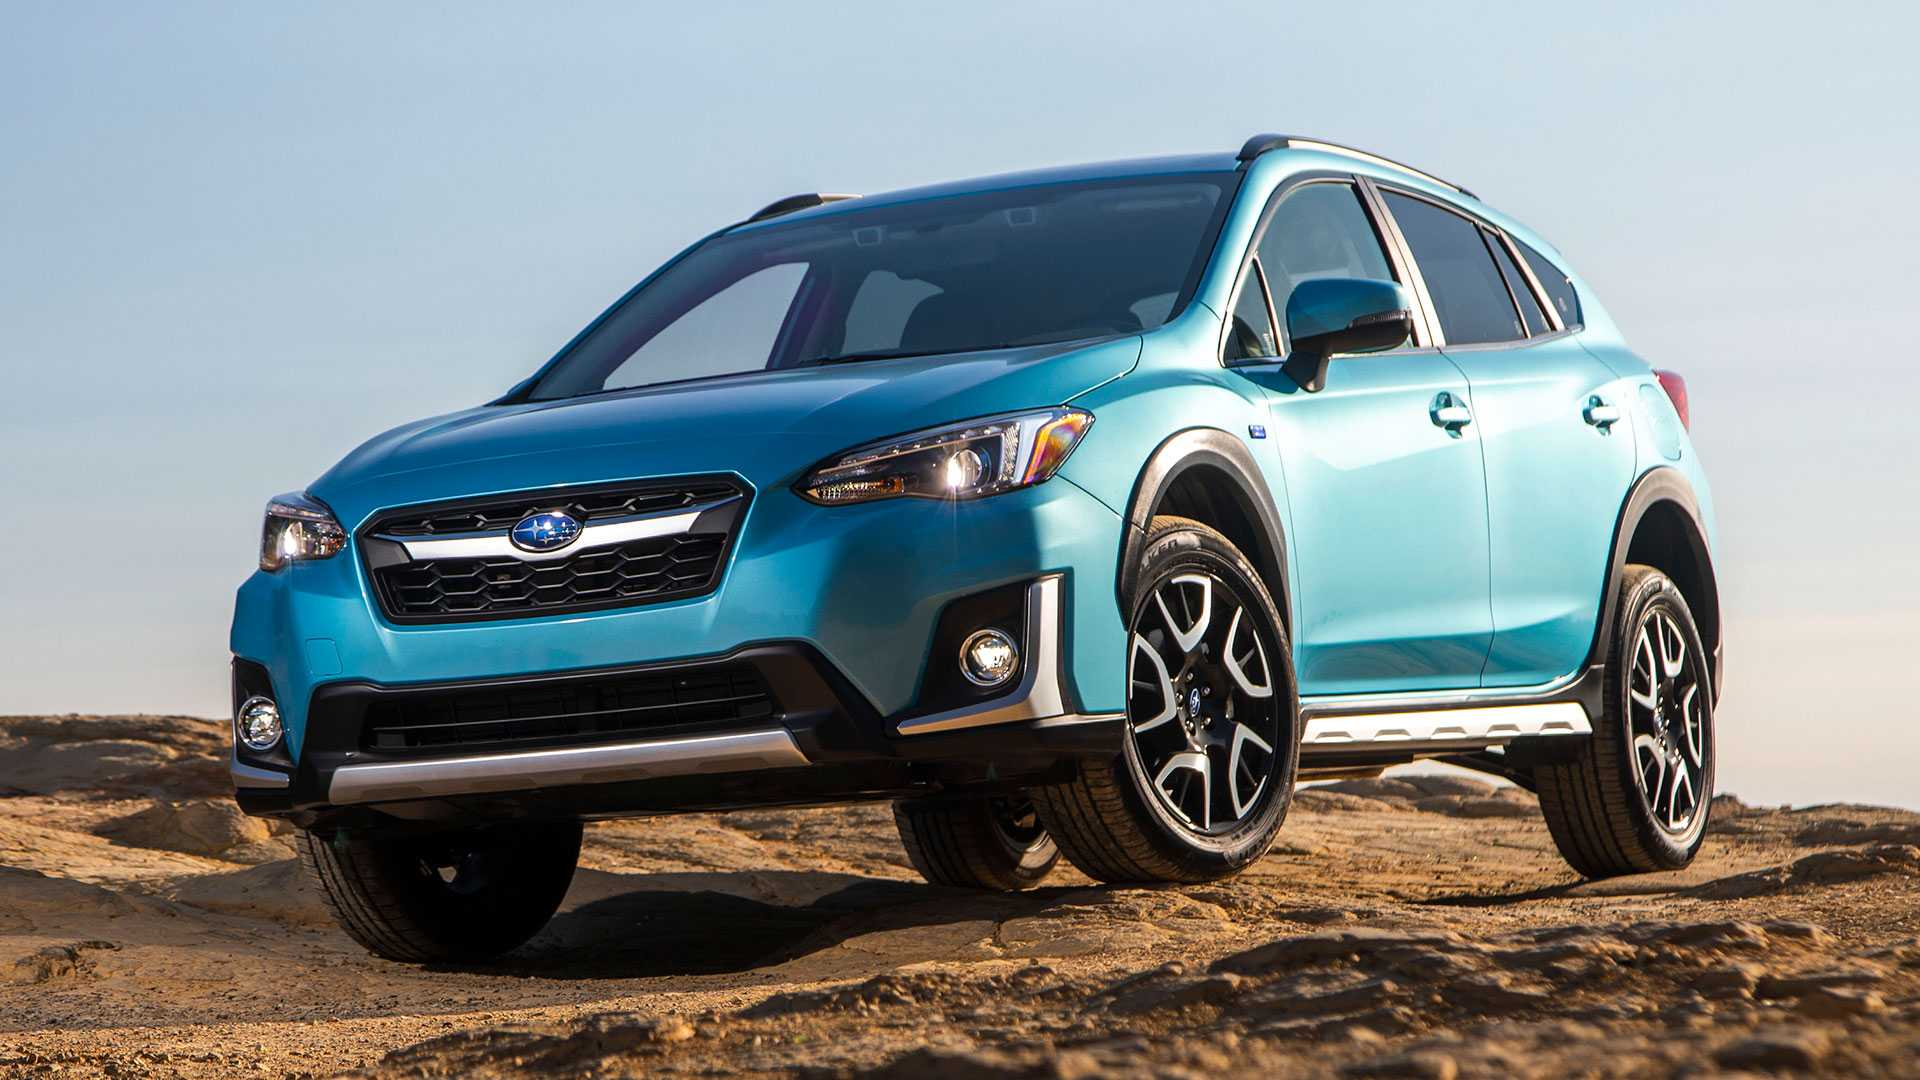 90 New 2019 Subaru Phev Pictures by 2019 Subaru Phev